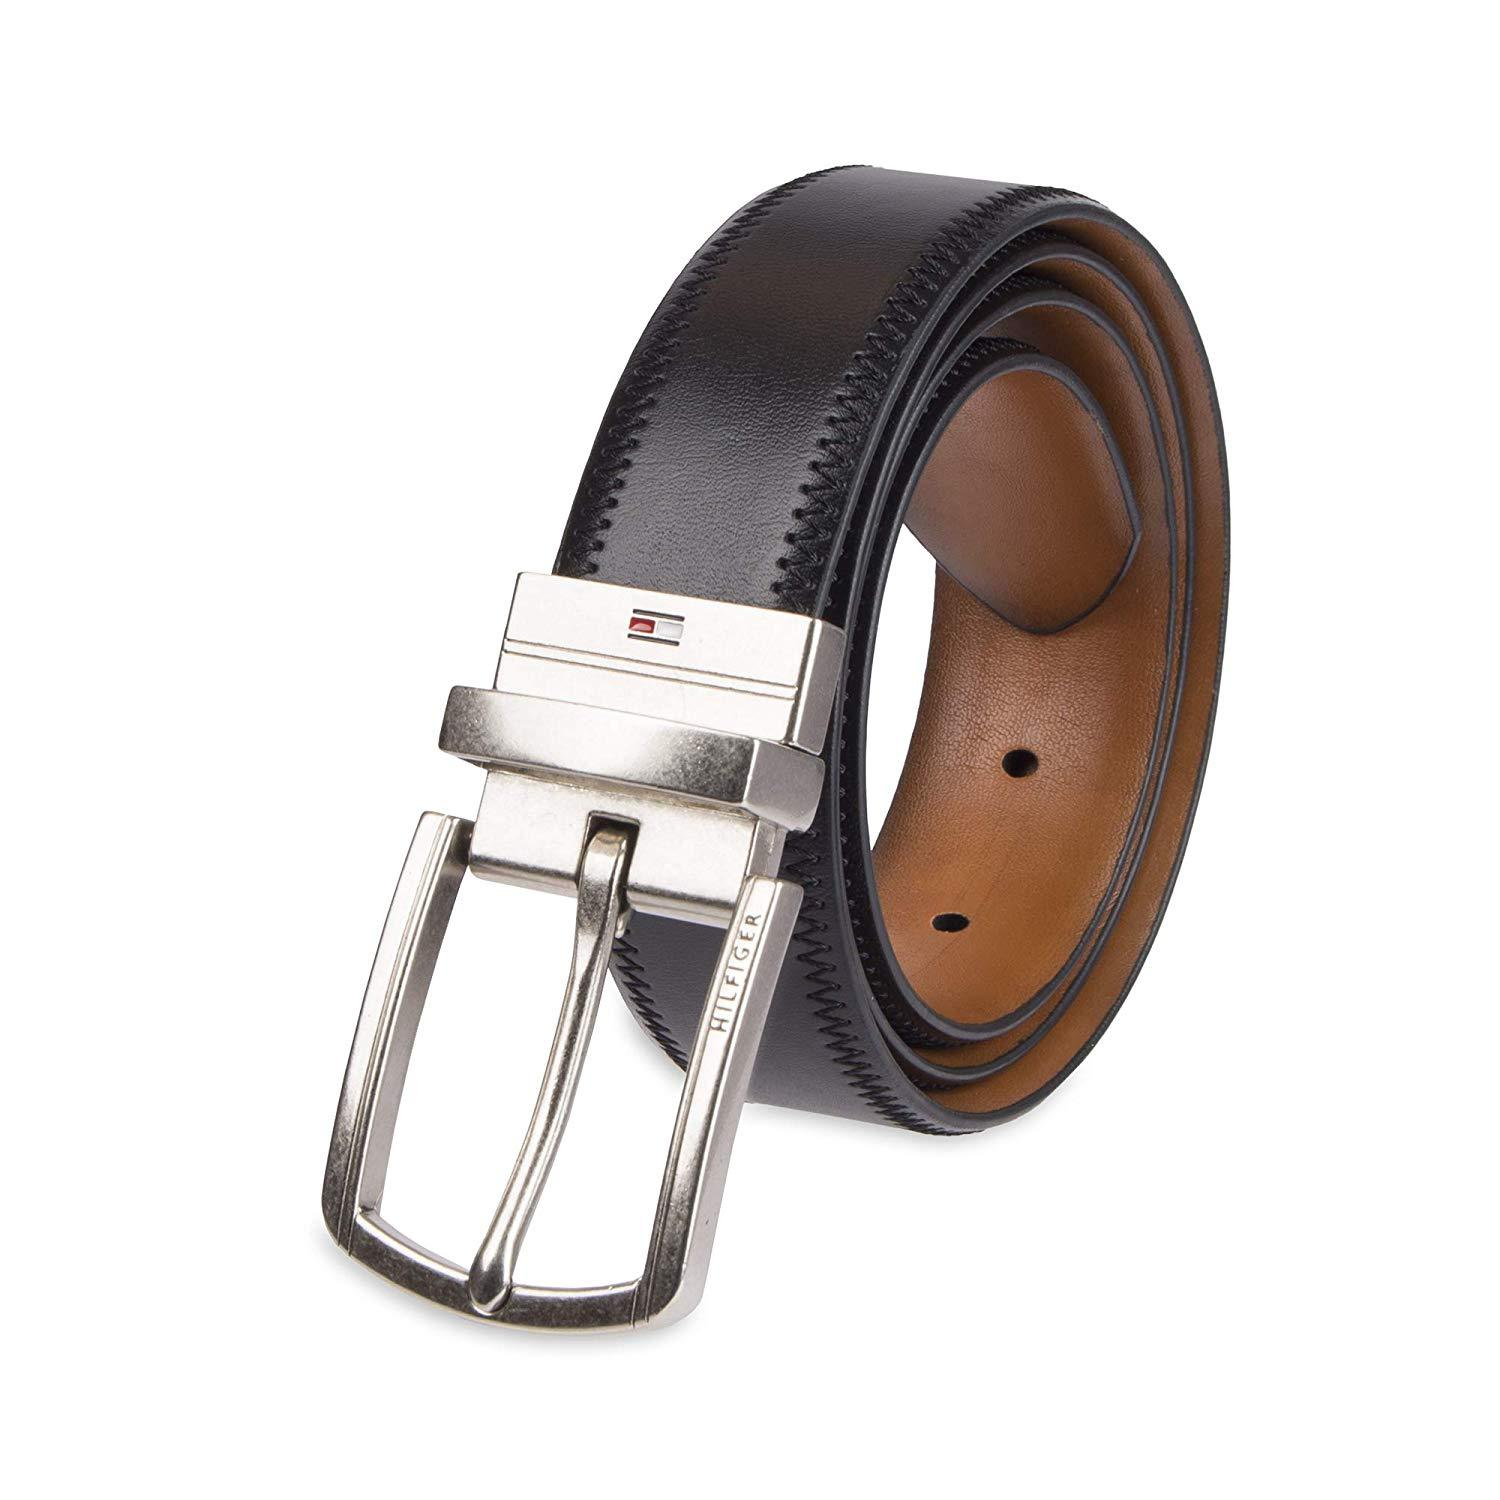 3.8CM New HG-products H-Style Unisex Men /& Women Business Casual Belt FREE shi